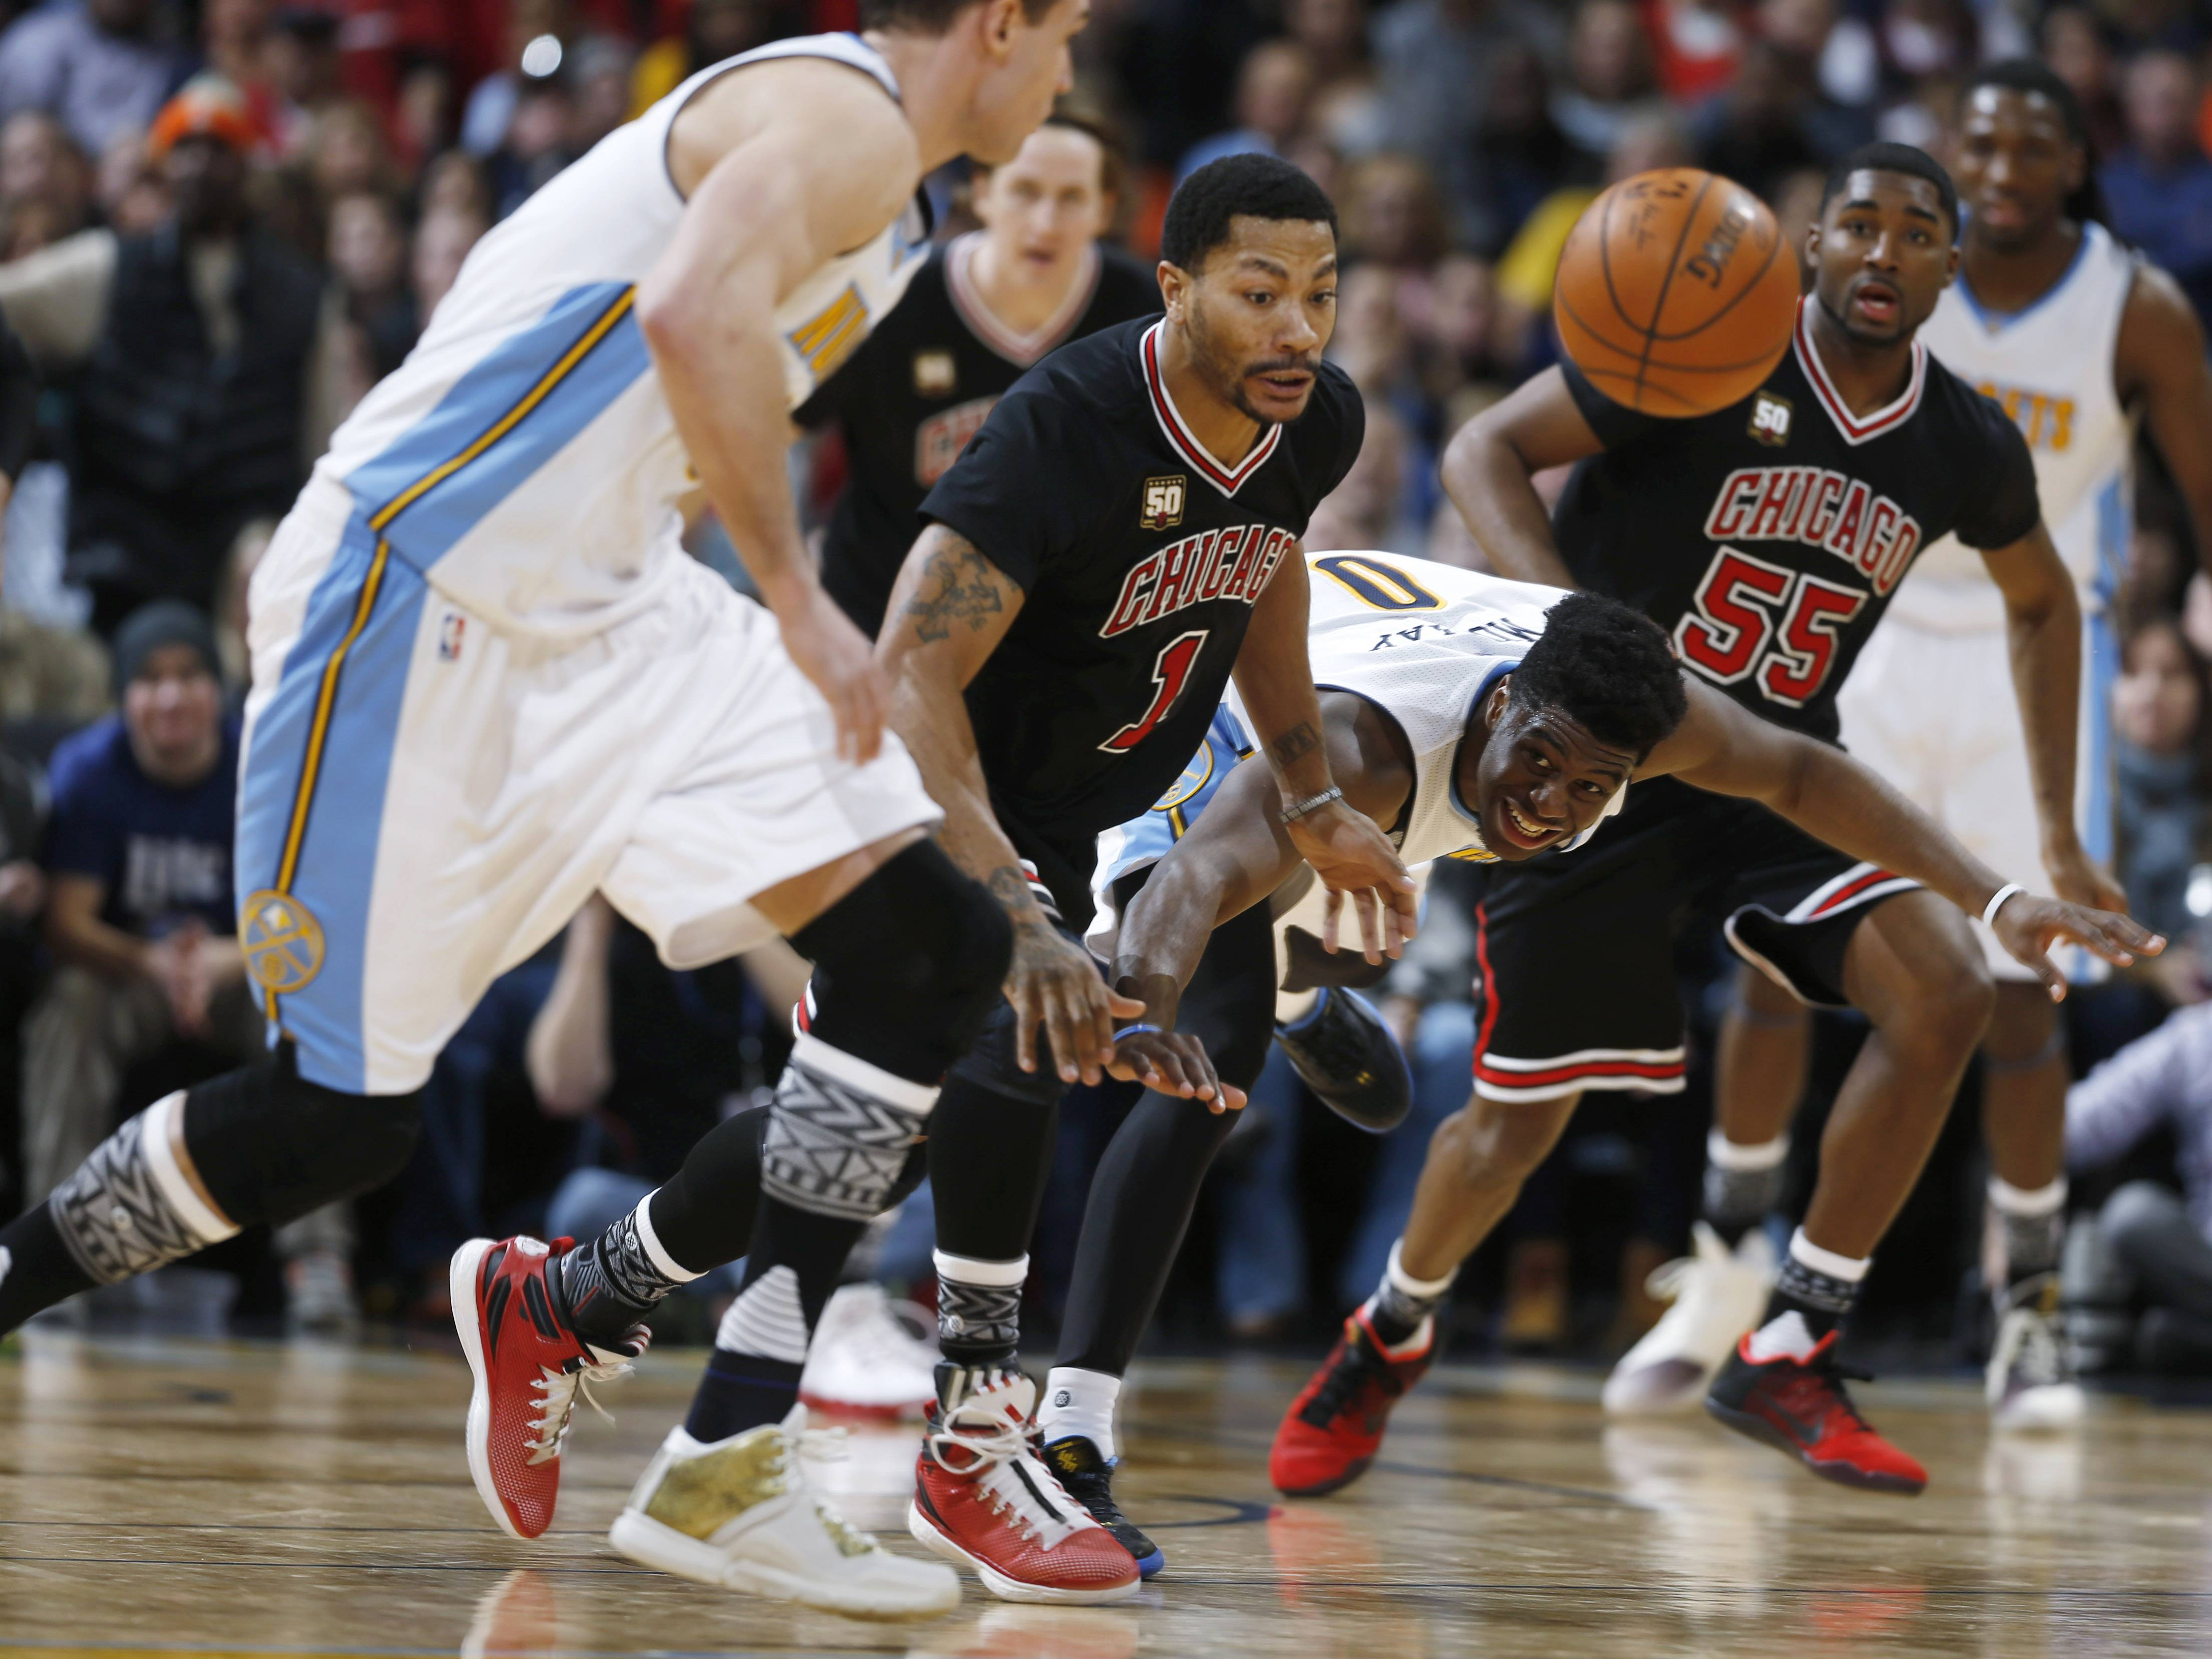 From left, Denver Nuggets forward Danilo Gallinari, of Italy, pursues a loose ball with Chicago Bulls guard Derrick Rose, Nuggets guard Emmanuel Mudiay and Bulls guard E'Twaun Moore during the second half of an NBA basketball game Friday, Feb. 5, 2016, in Denver. The Nuggets won 115-110. (AP Photo/David Zalubowski)